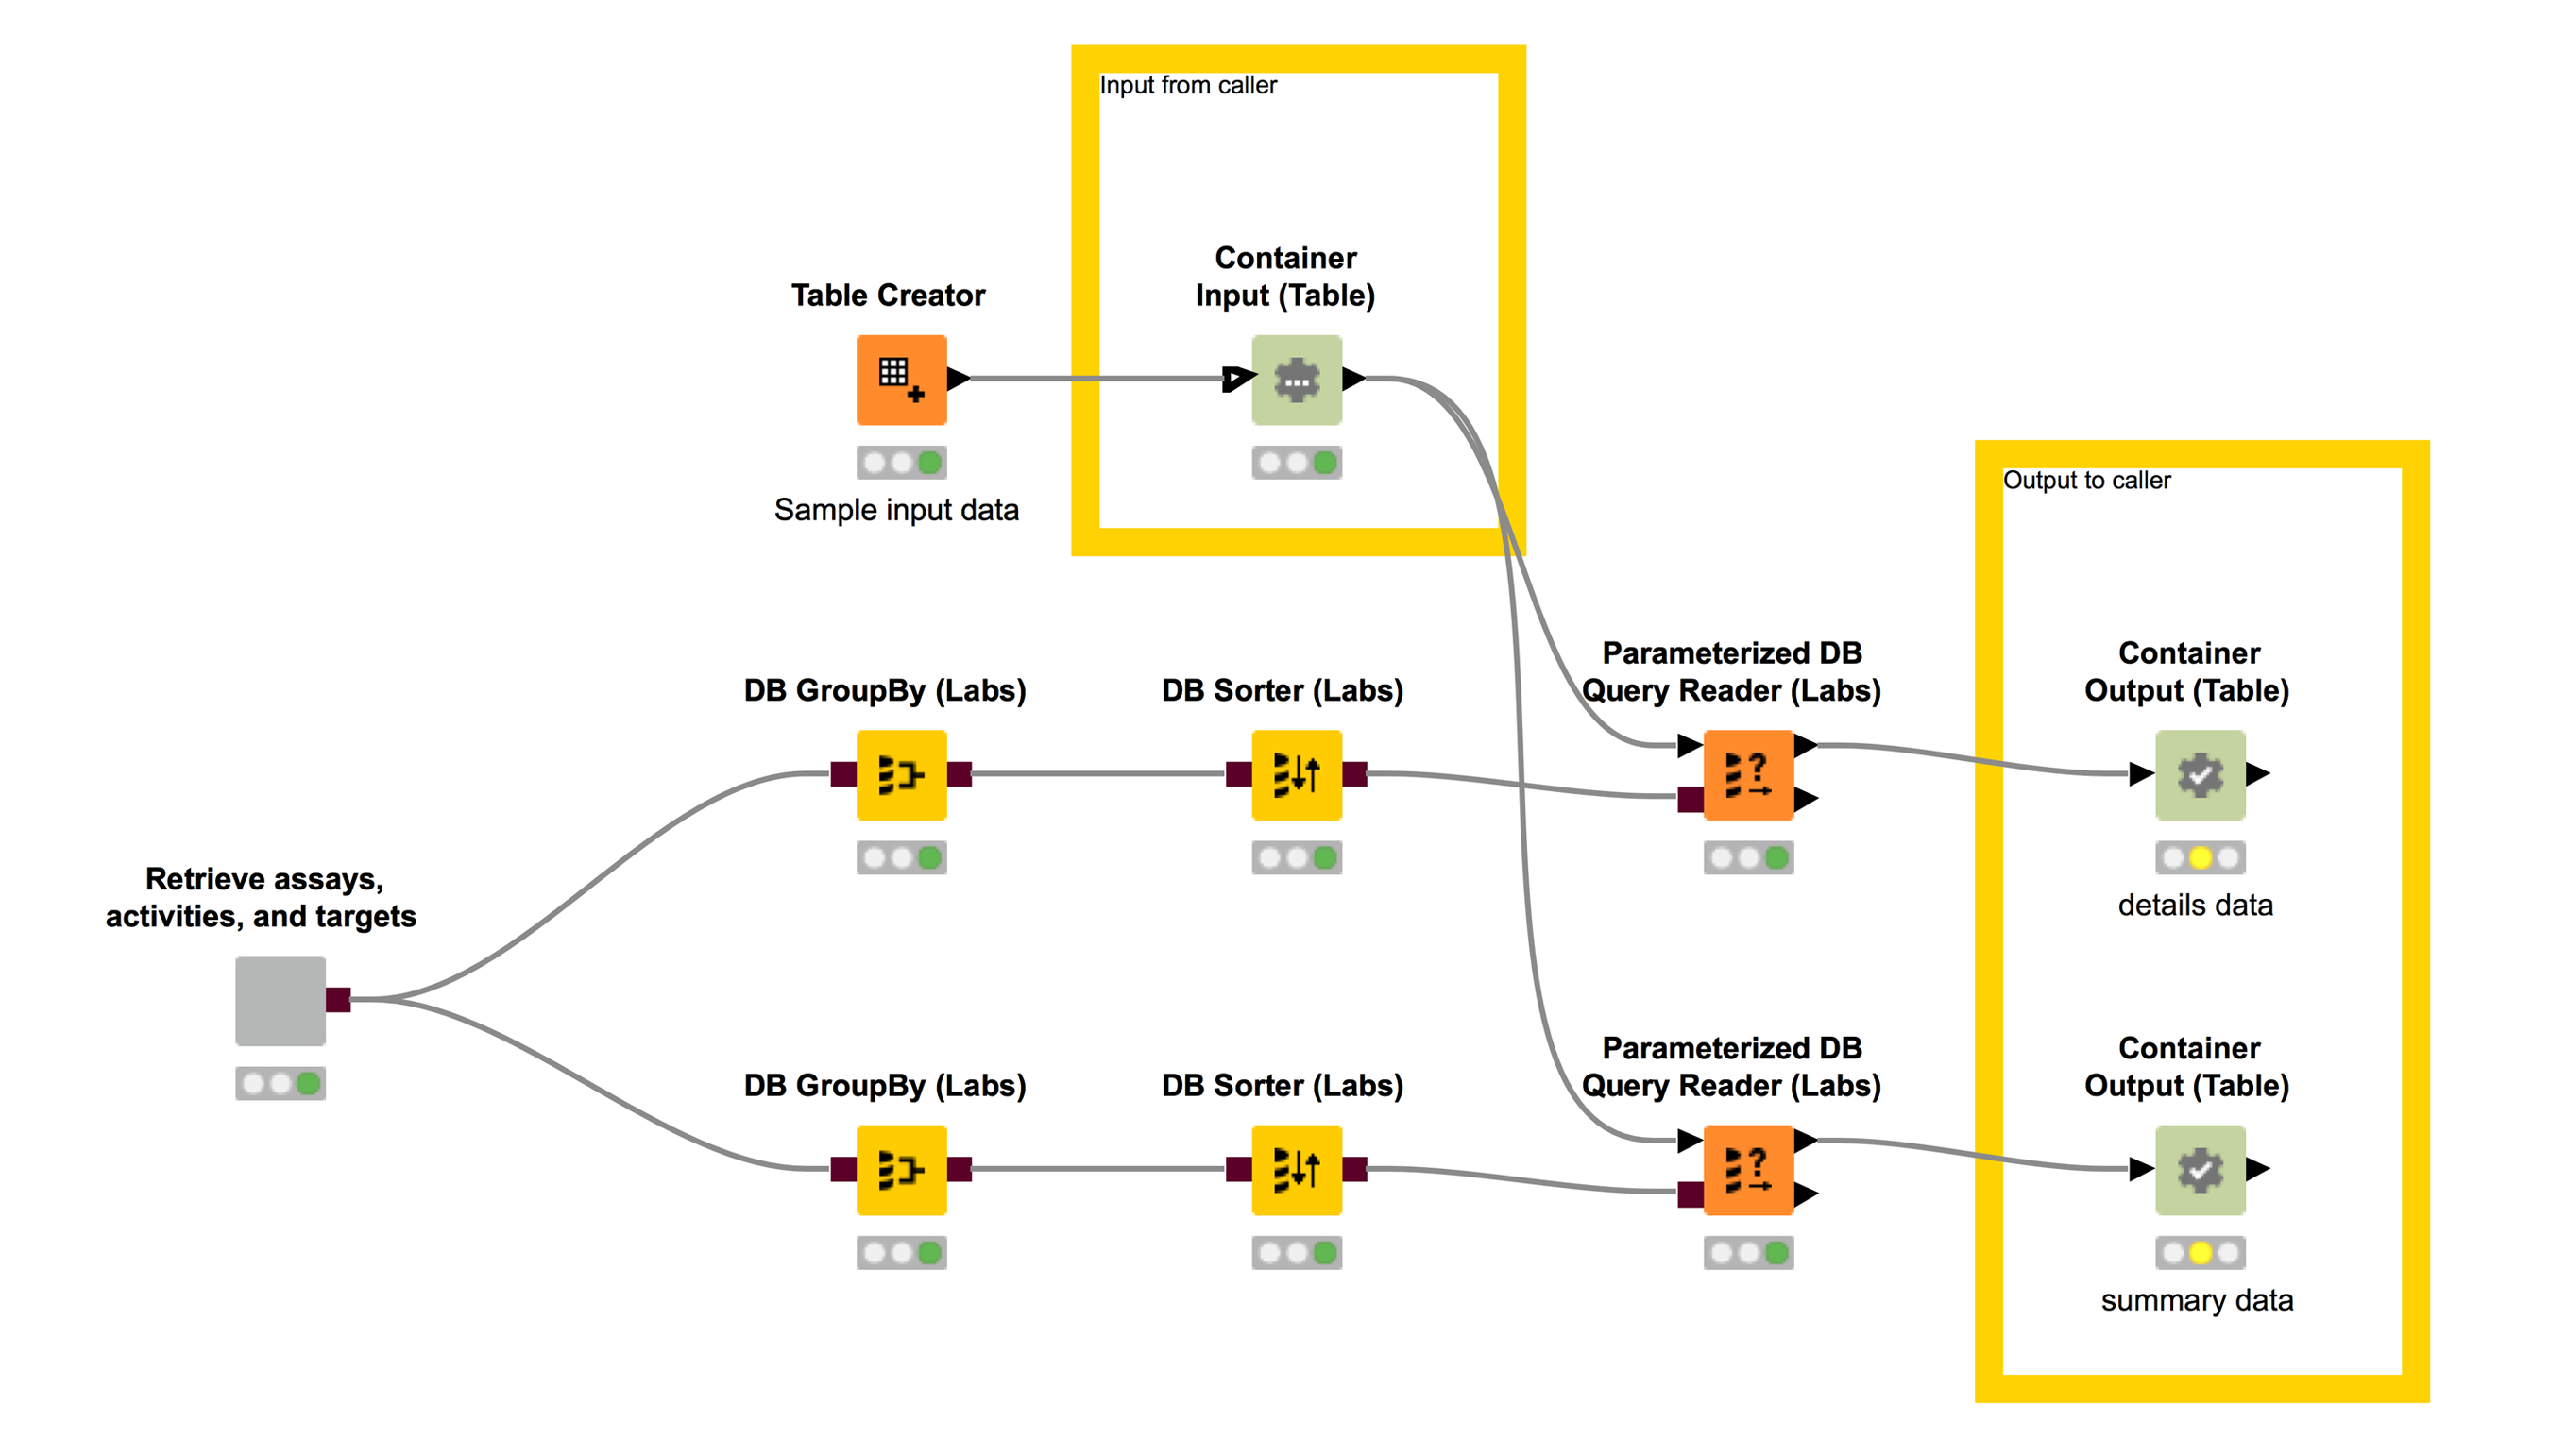 KNIME workflow to perform a complex database query - retrieve assays, activities and targets, followed by filtering to a user-provided table.